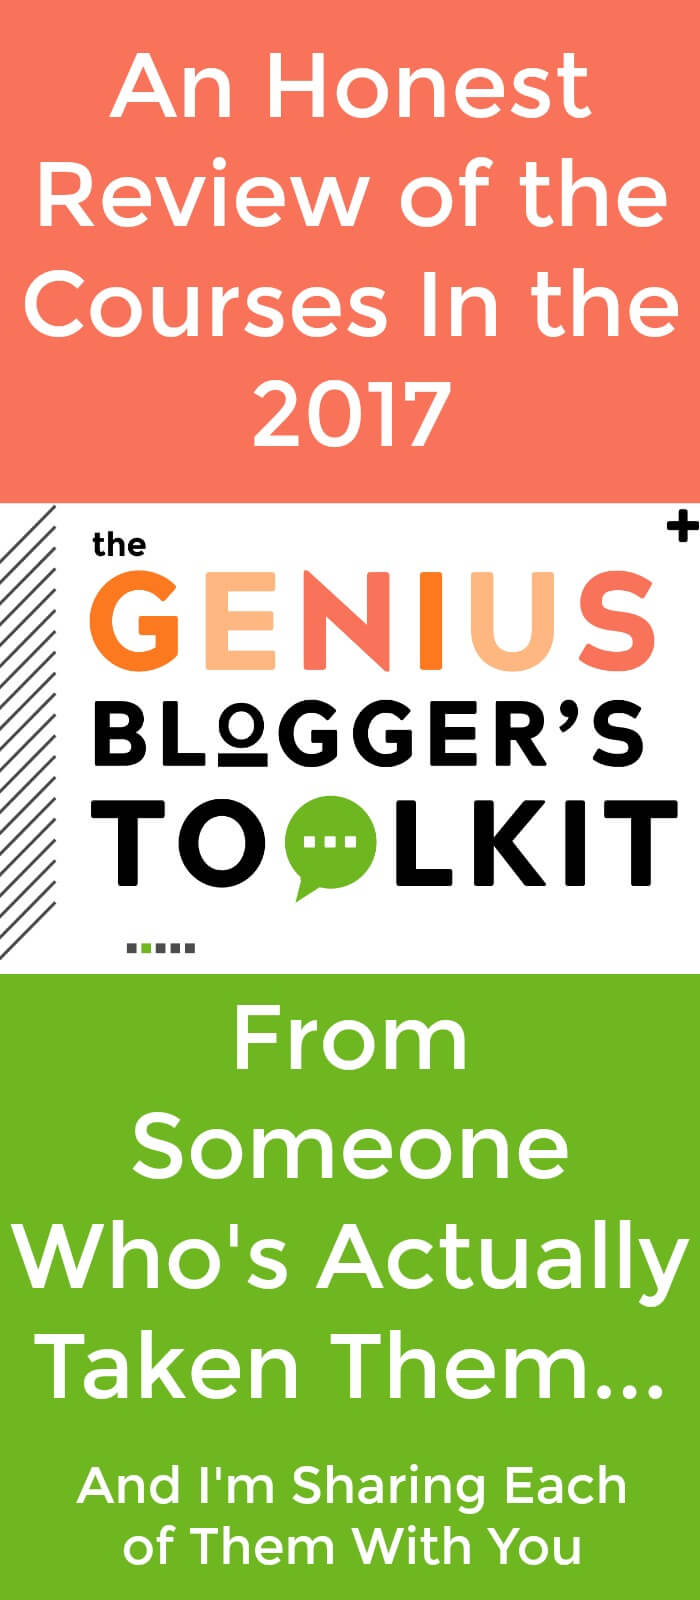 I'm sharing an honest, no-holds-barred review of the resources in the 2017 Genius Blogger's Toolkit because I want you to spend your blogging income the best way for your business.